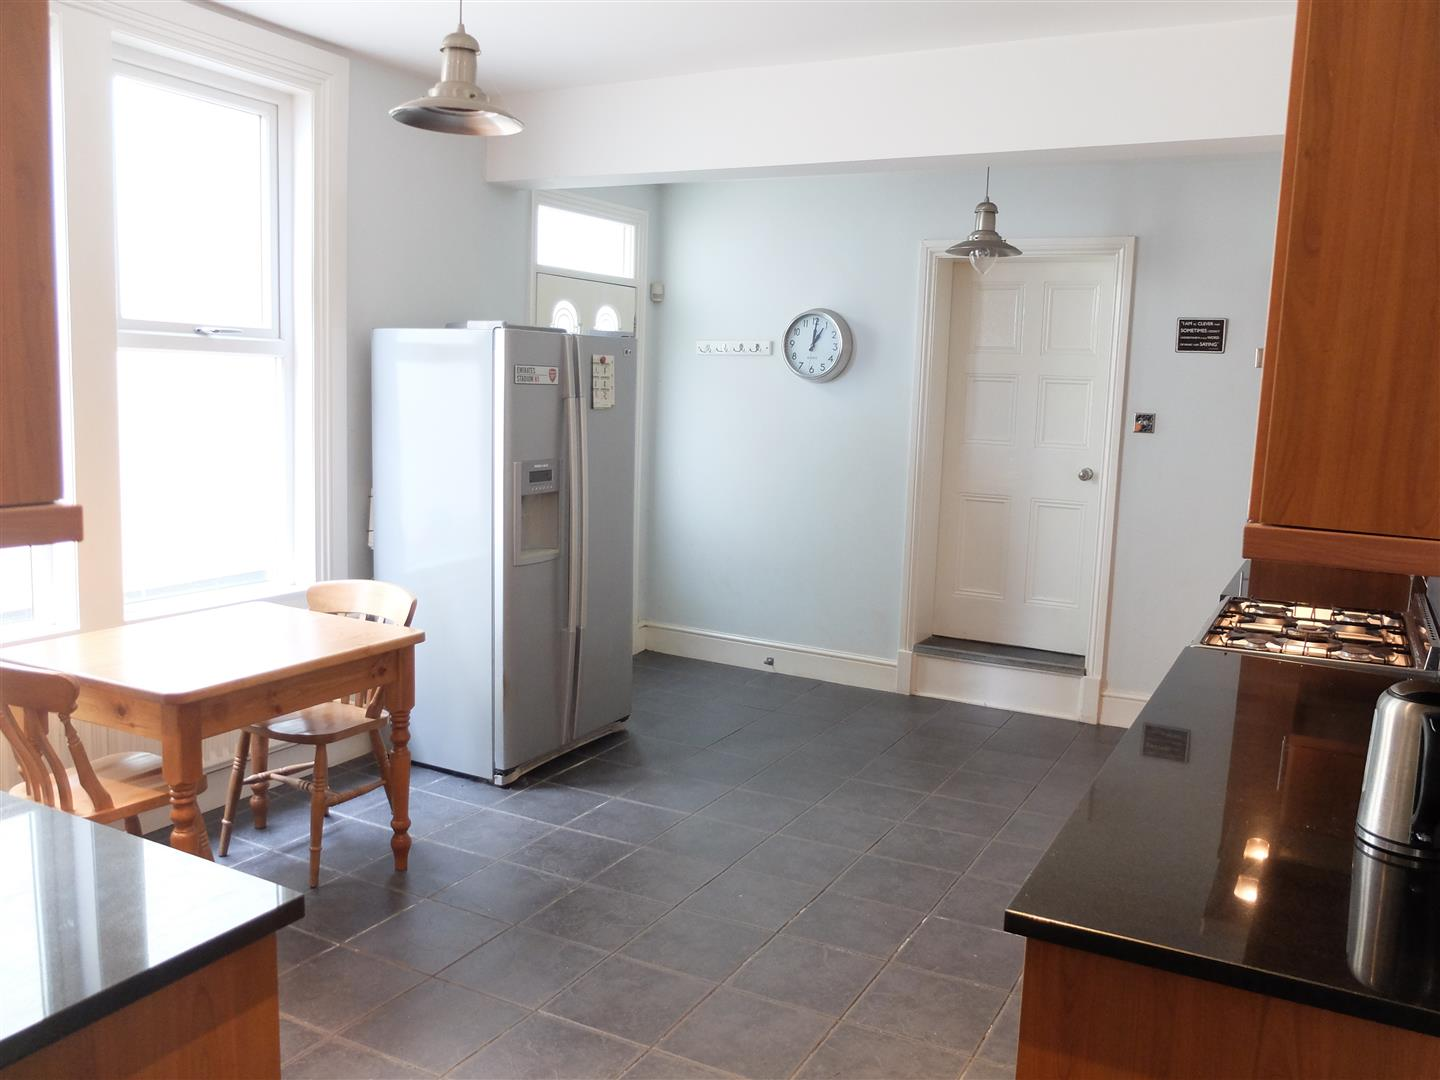 5 Bedrooms House - Terraced For Sale 40 Victoria Place Carlisle 219,995